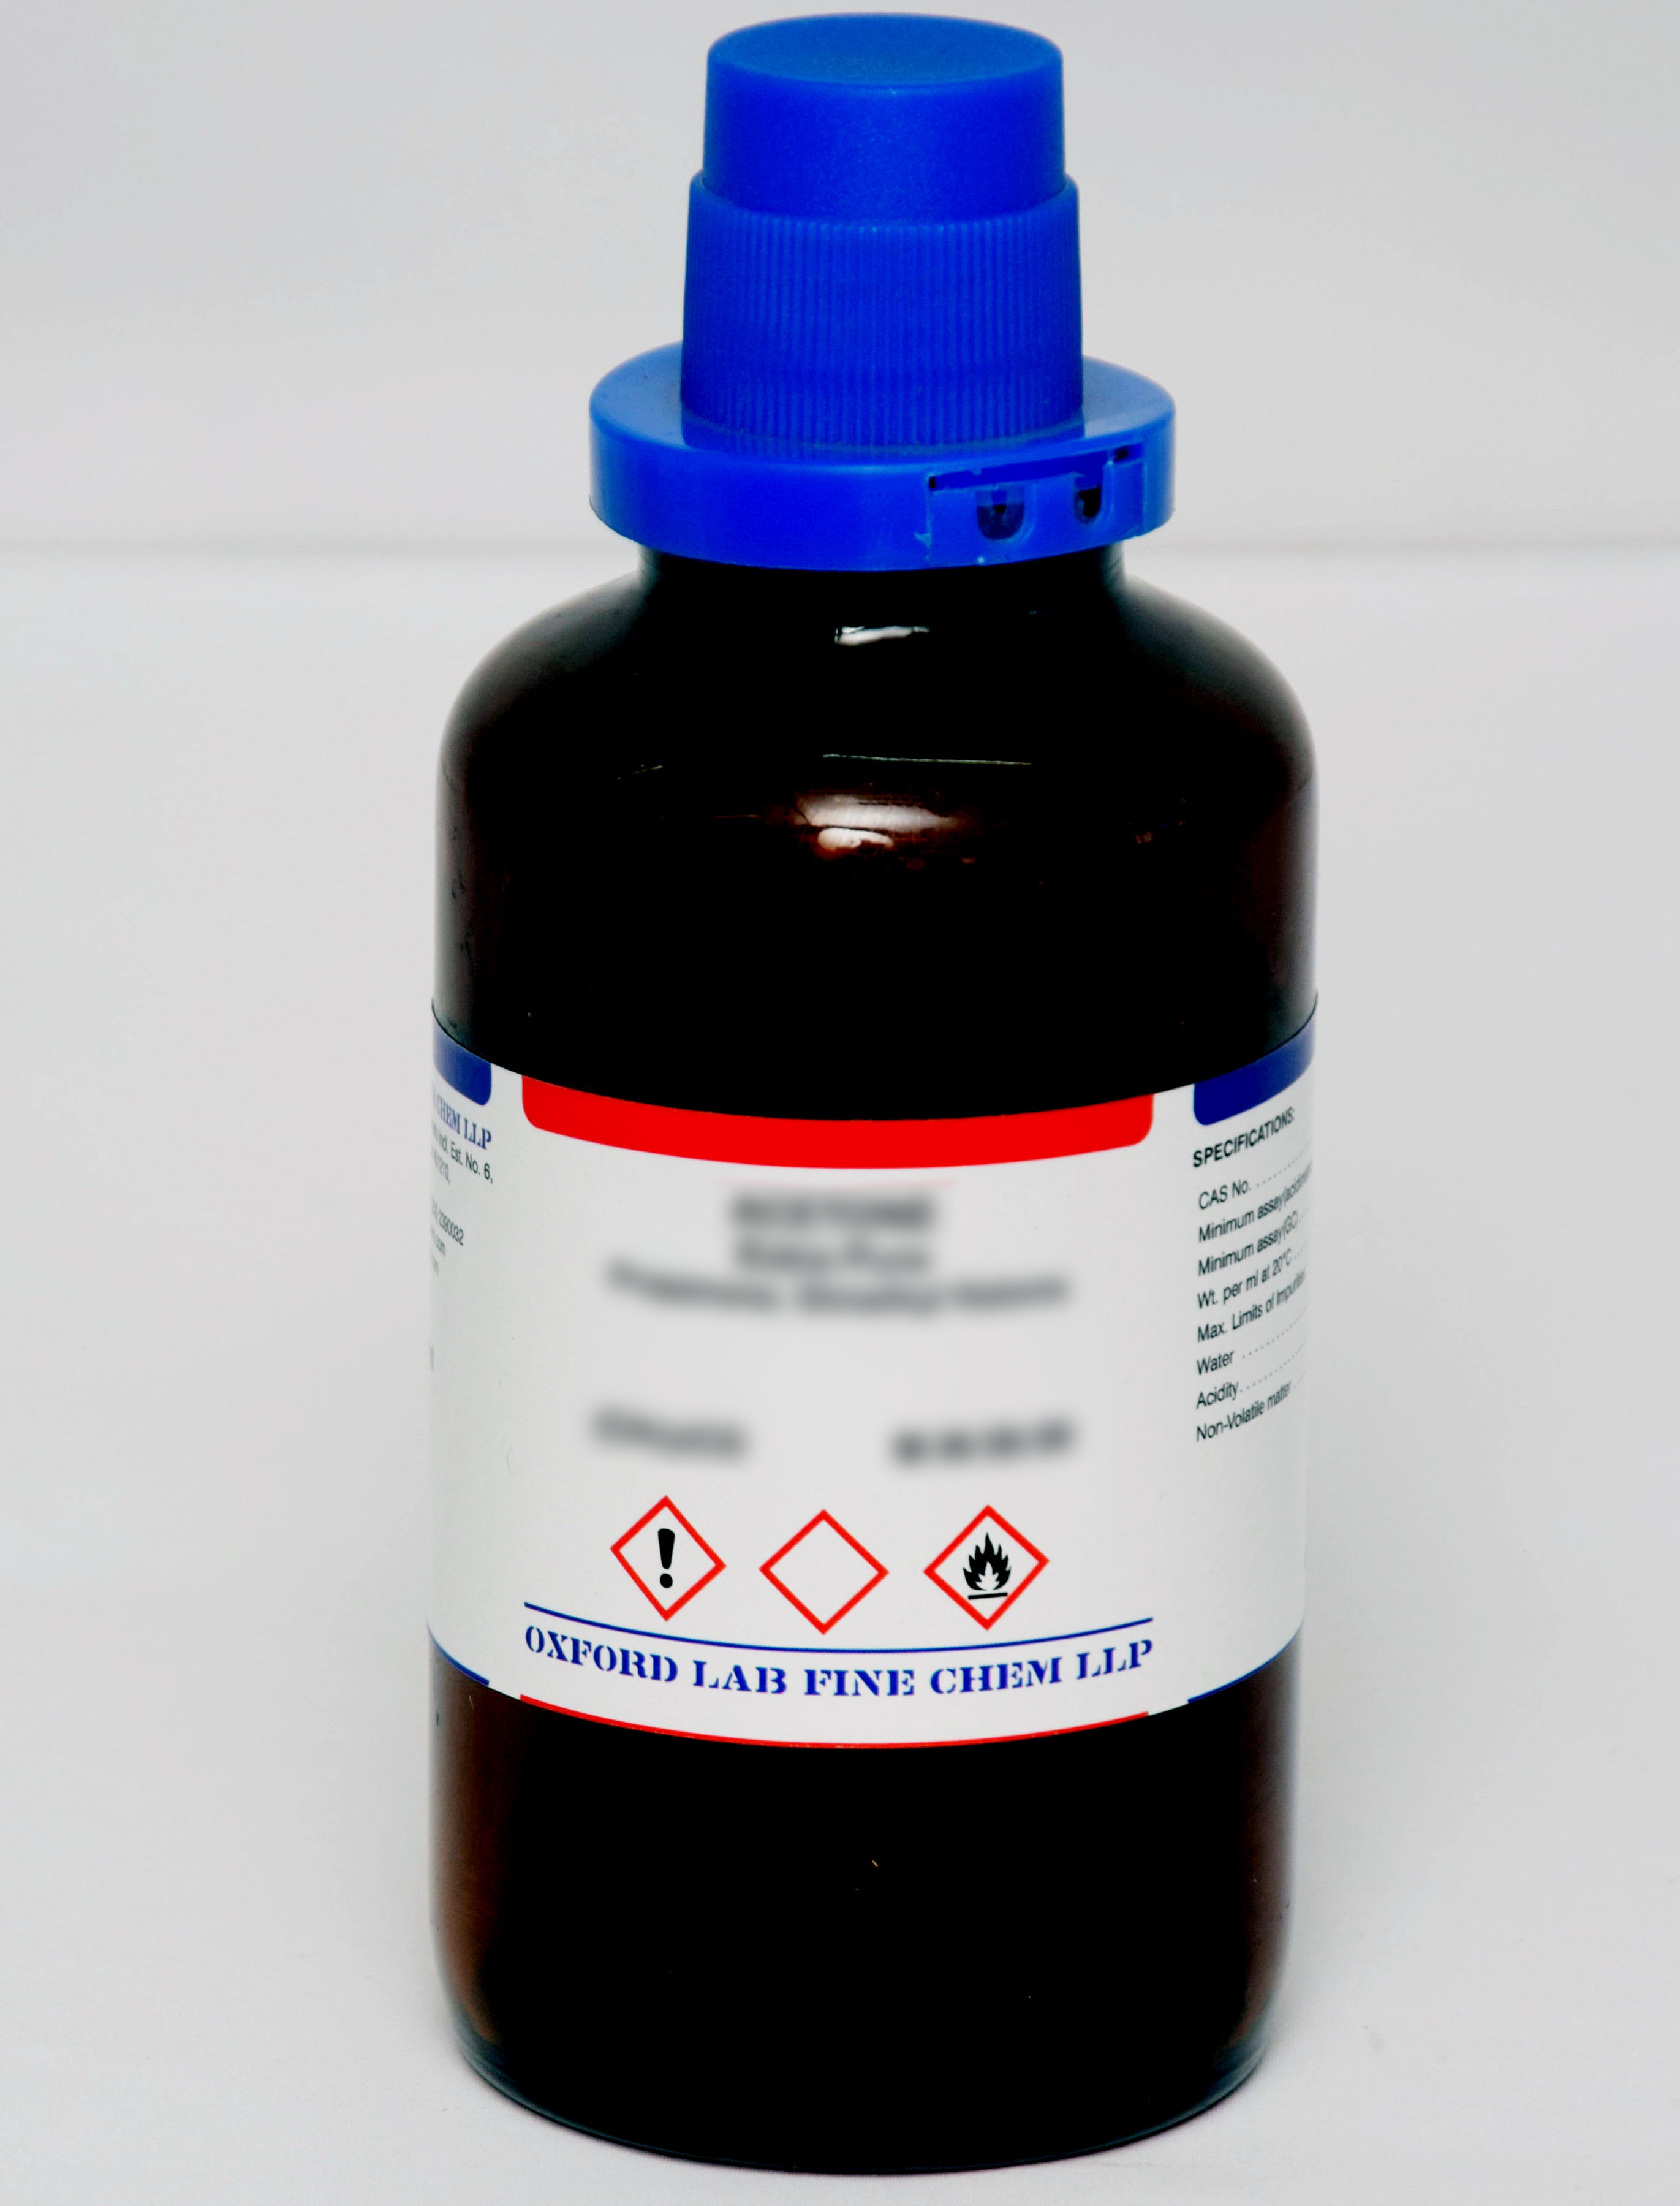 OIL OF PALM Extra Pure